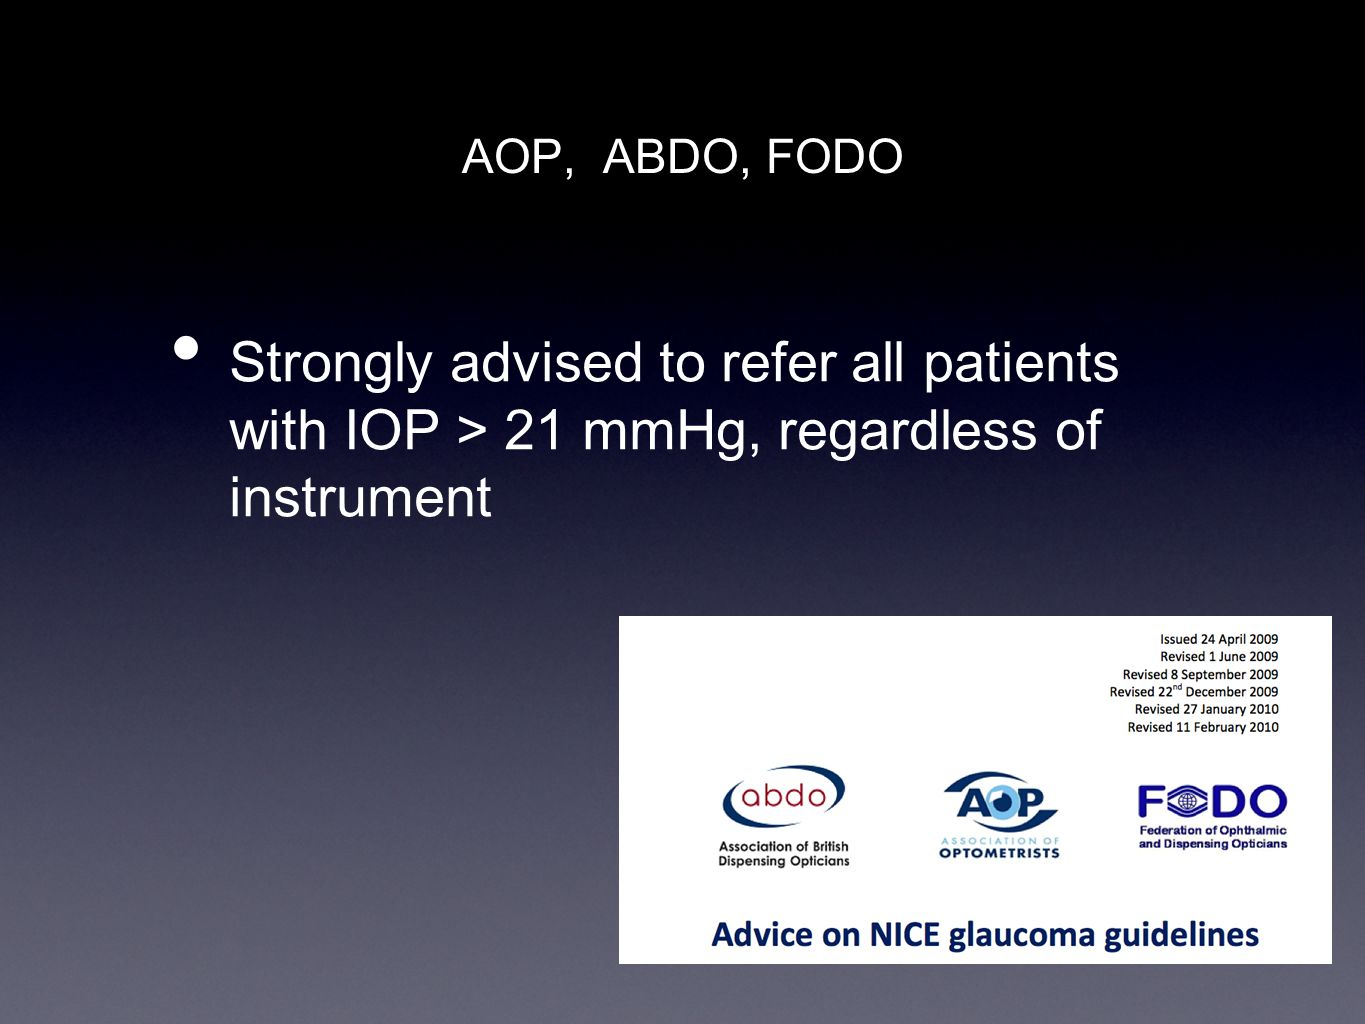 AOP, ABDO, FODO Strongly advised to refer all patients with IOP > 21 mmHg, regardless of instrument.